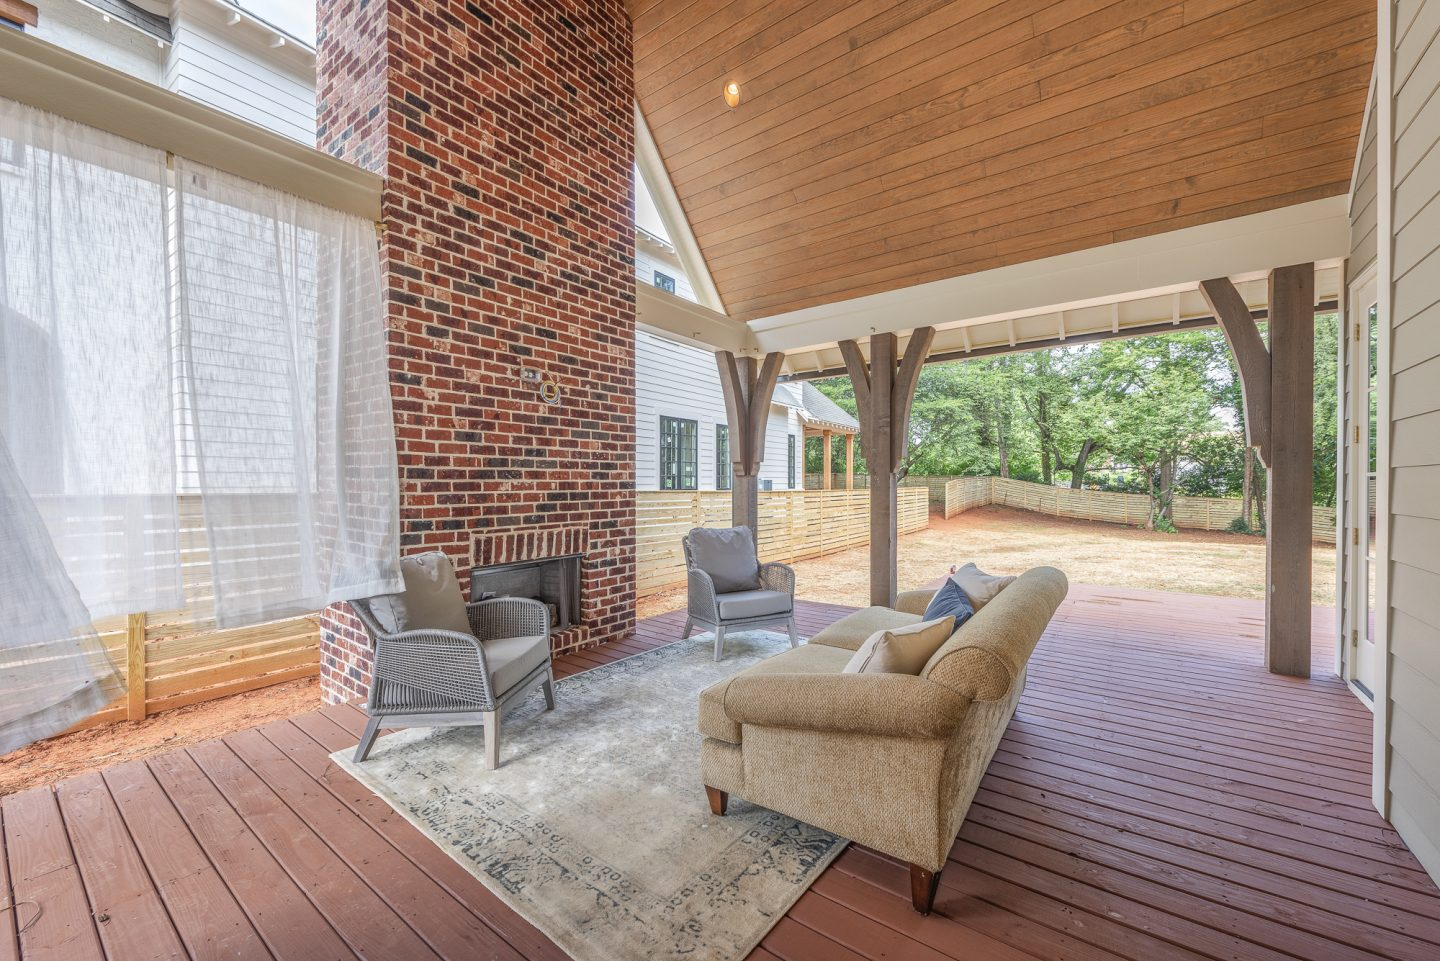 luxury home - outdoor living space - Pike Properties - Charlotte, NC